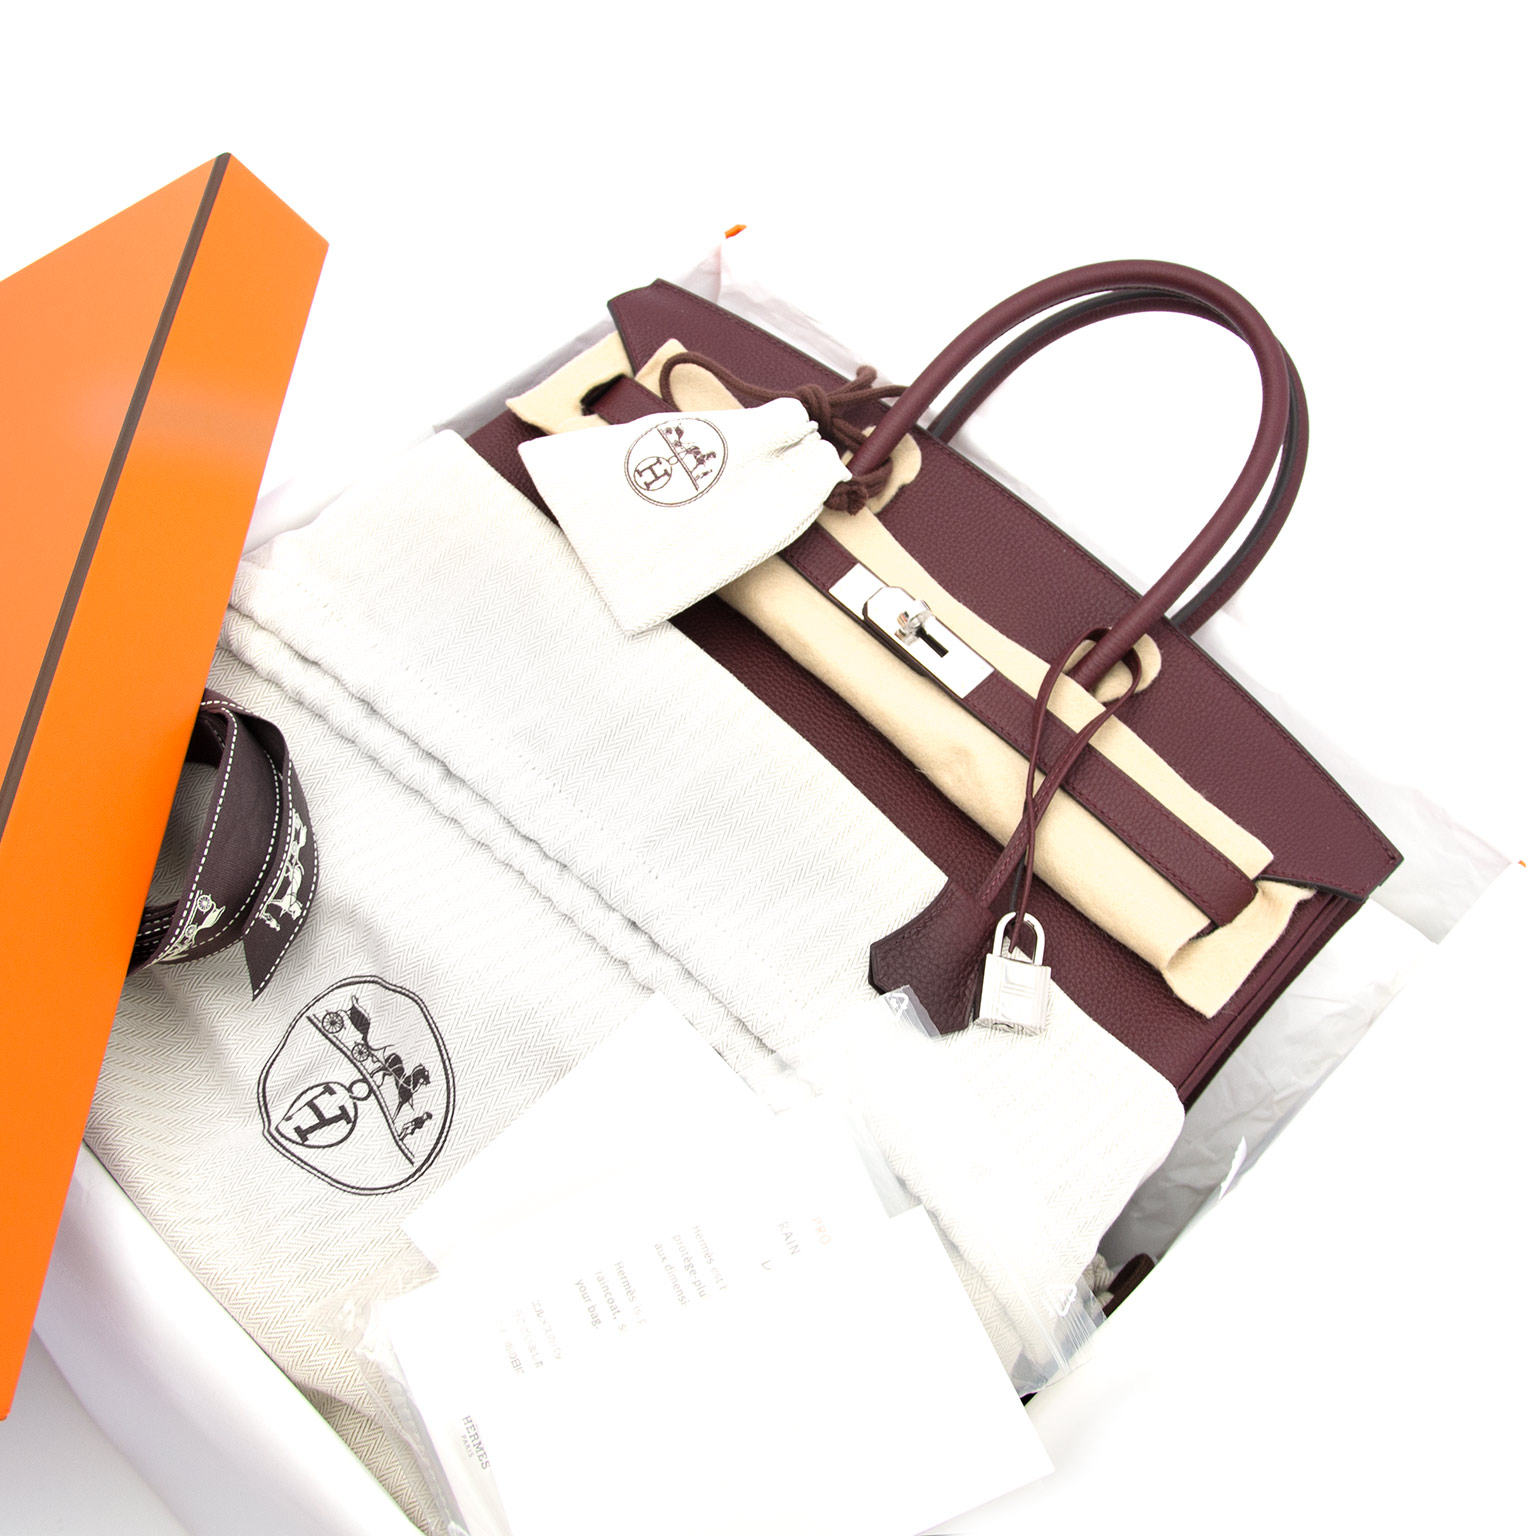 100% authentic hermes birkin 35 togo bordeaux phw now online at labellov.com